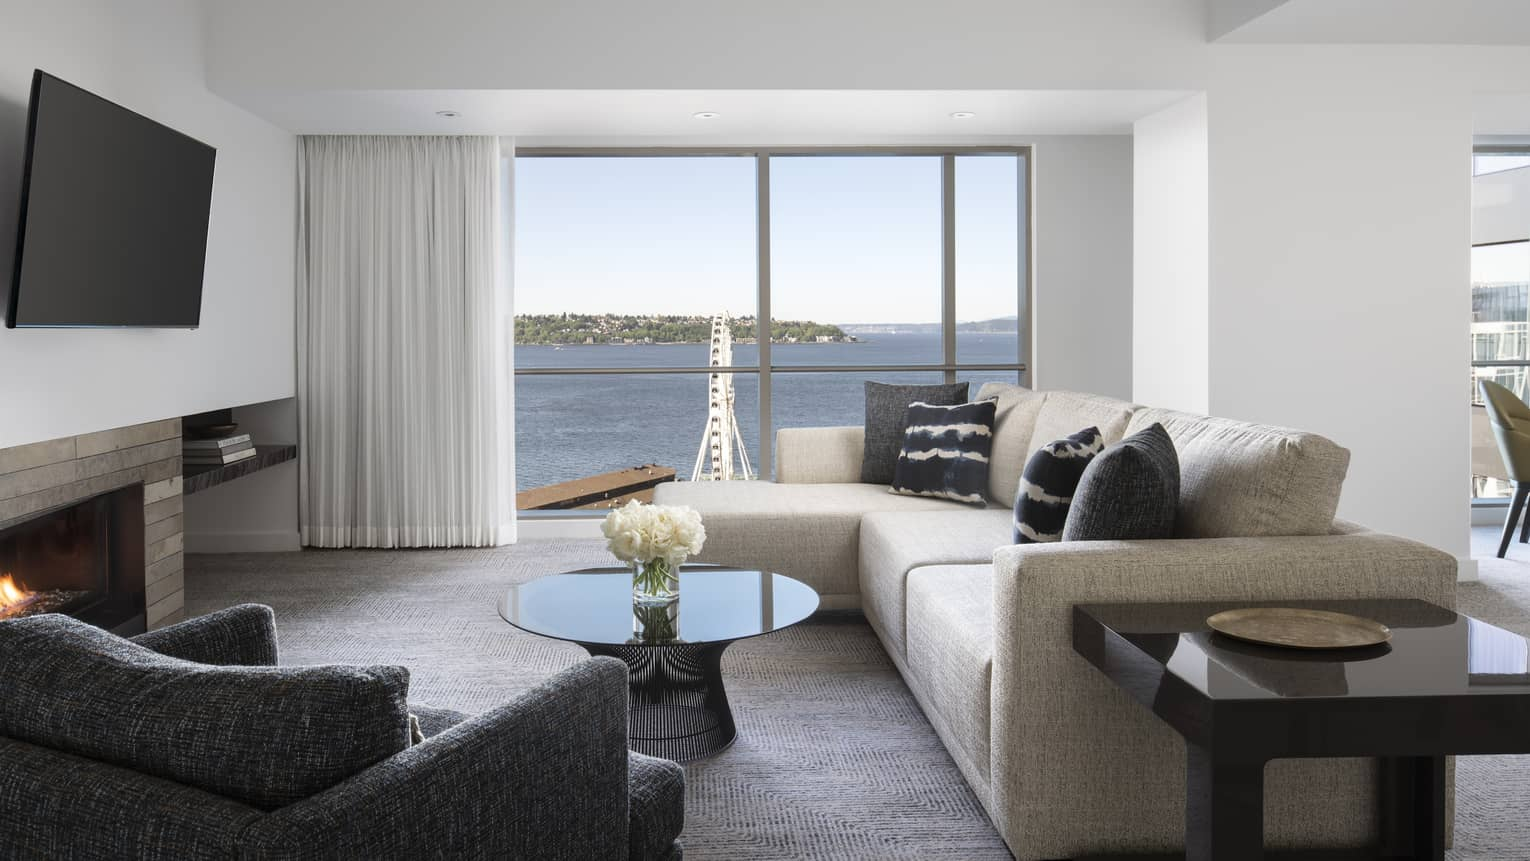 The Deluxe Elliot Bay Suite living room has comfortable couches and a view of the Seattle Great Wheel